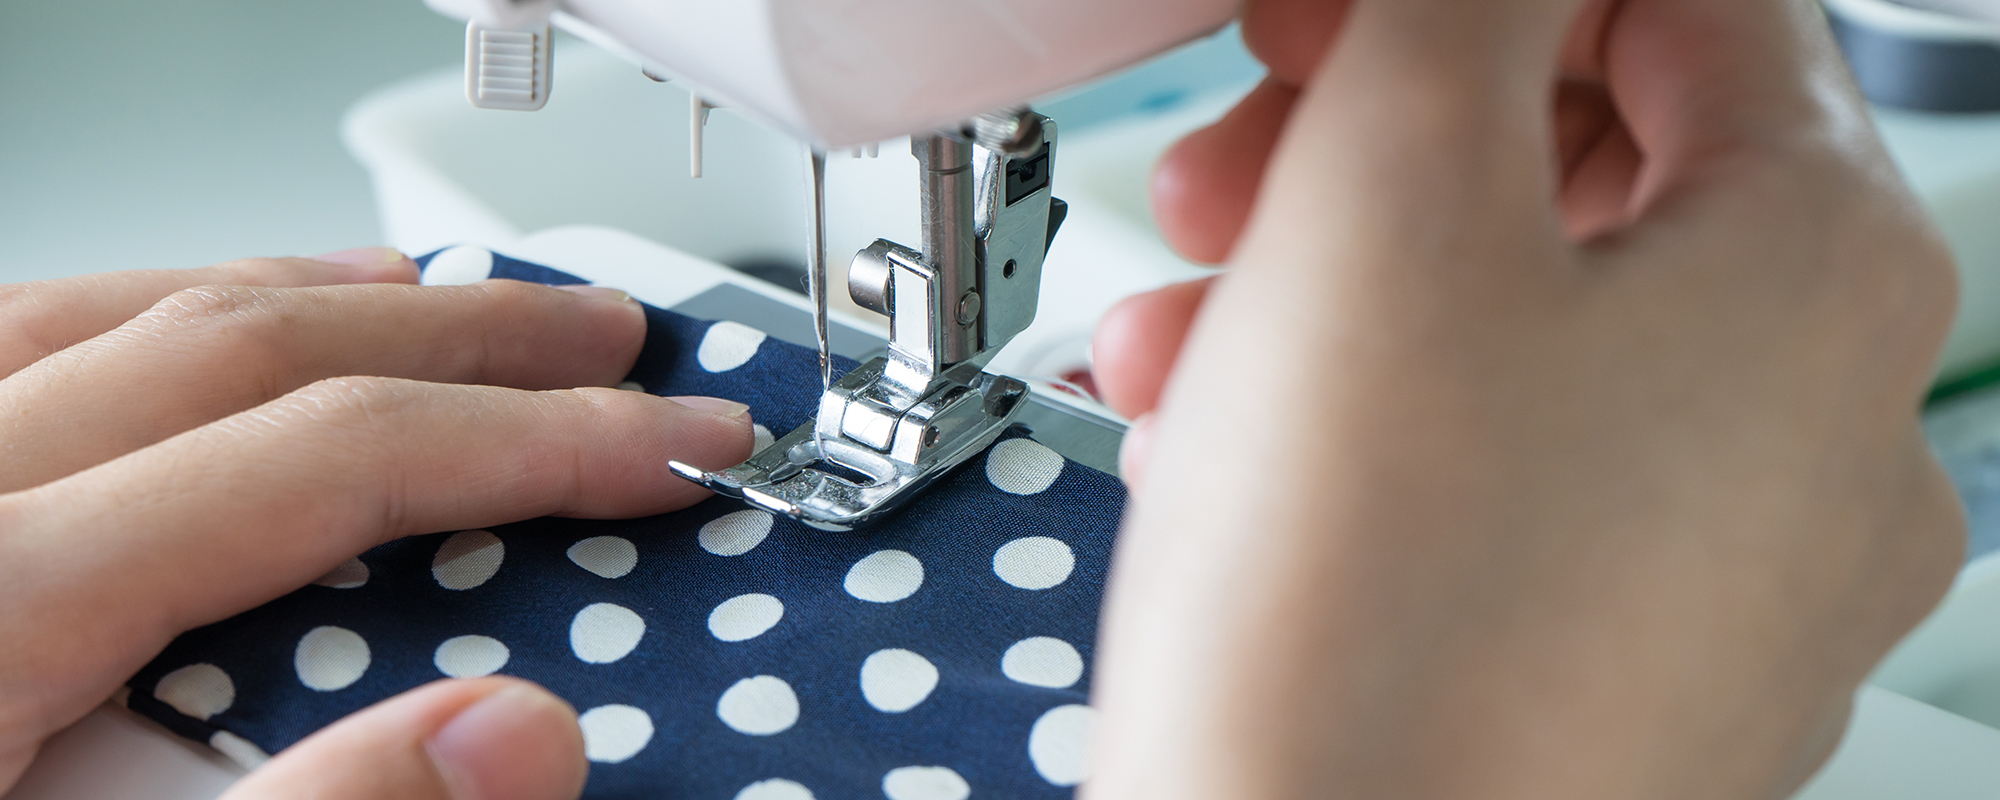 White polka dot cloth being altered